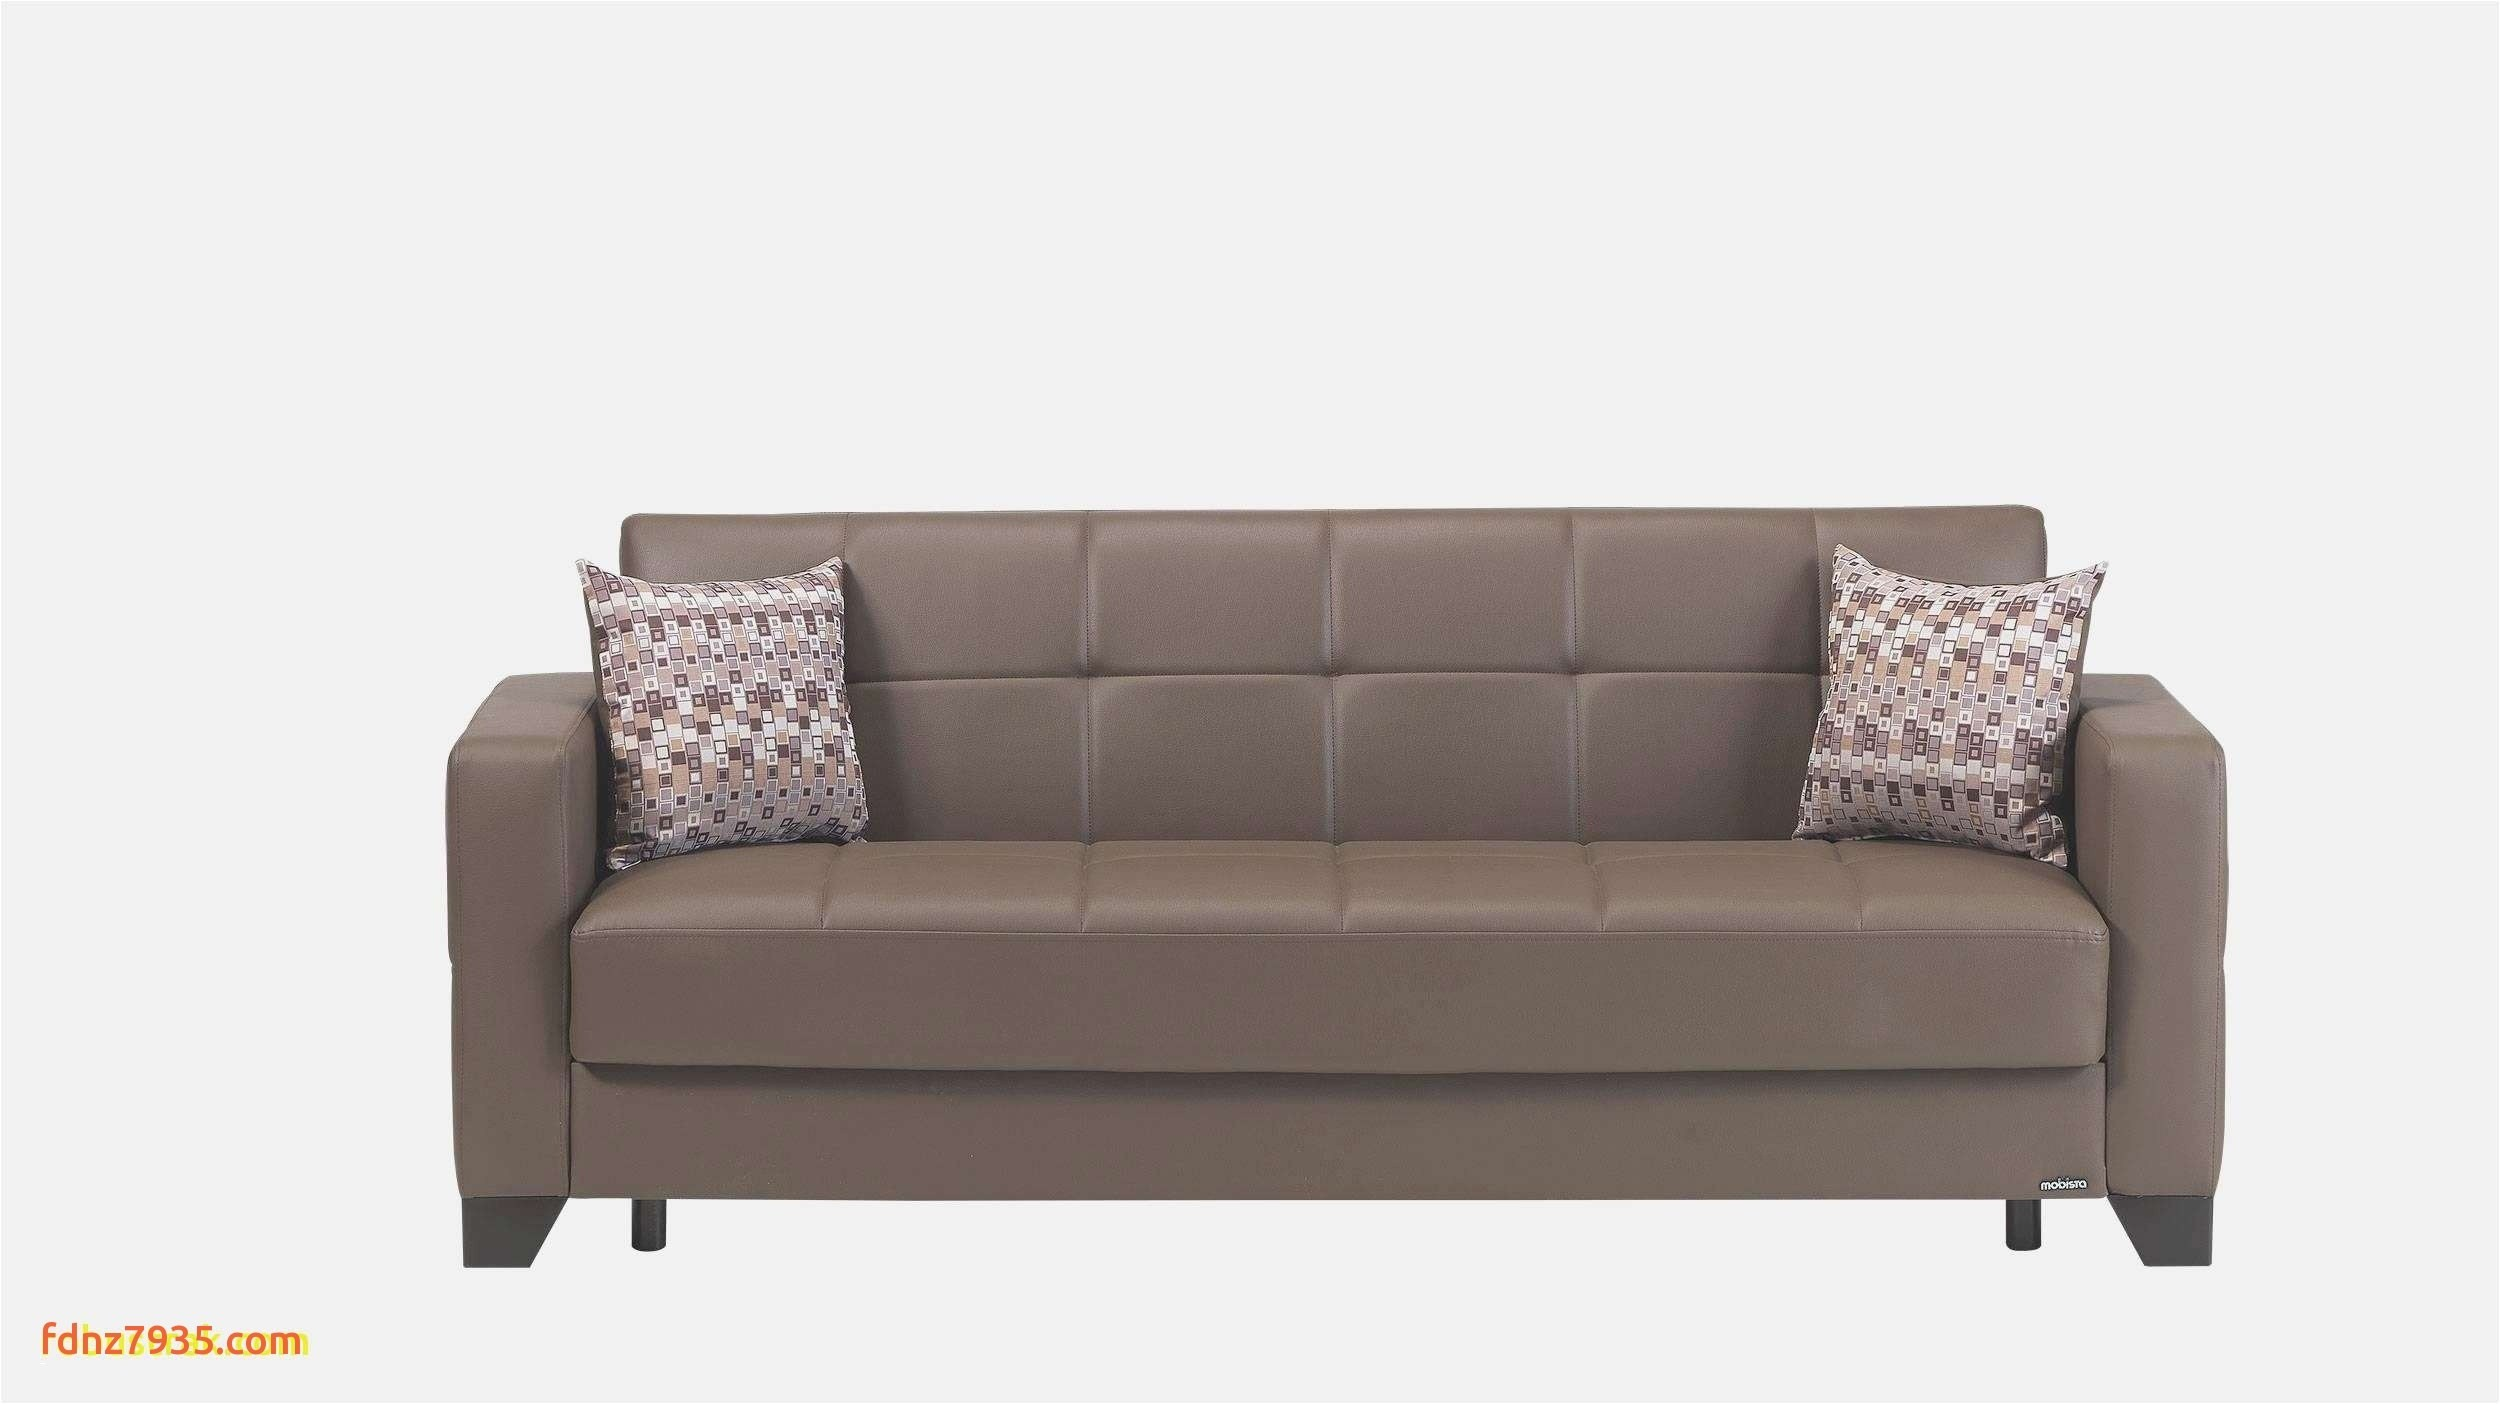 Outdoor Furniture Er Beautiful Ers For Pets Fresh Sectional Couch New 0d